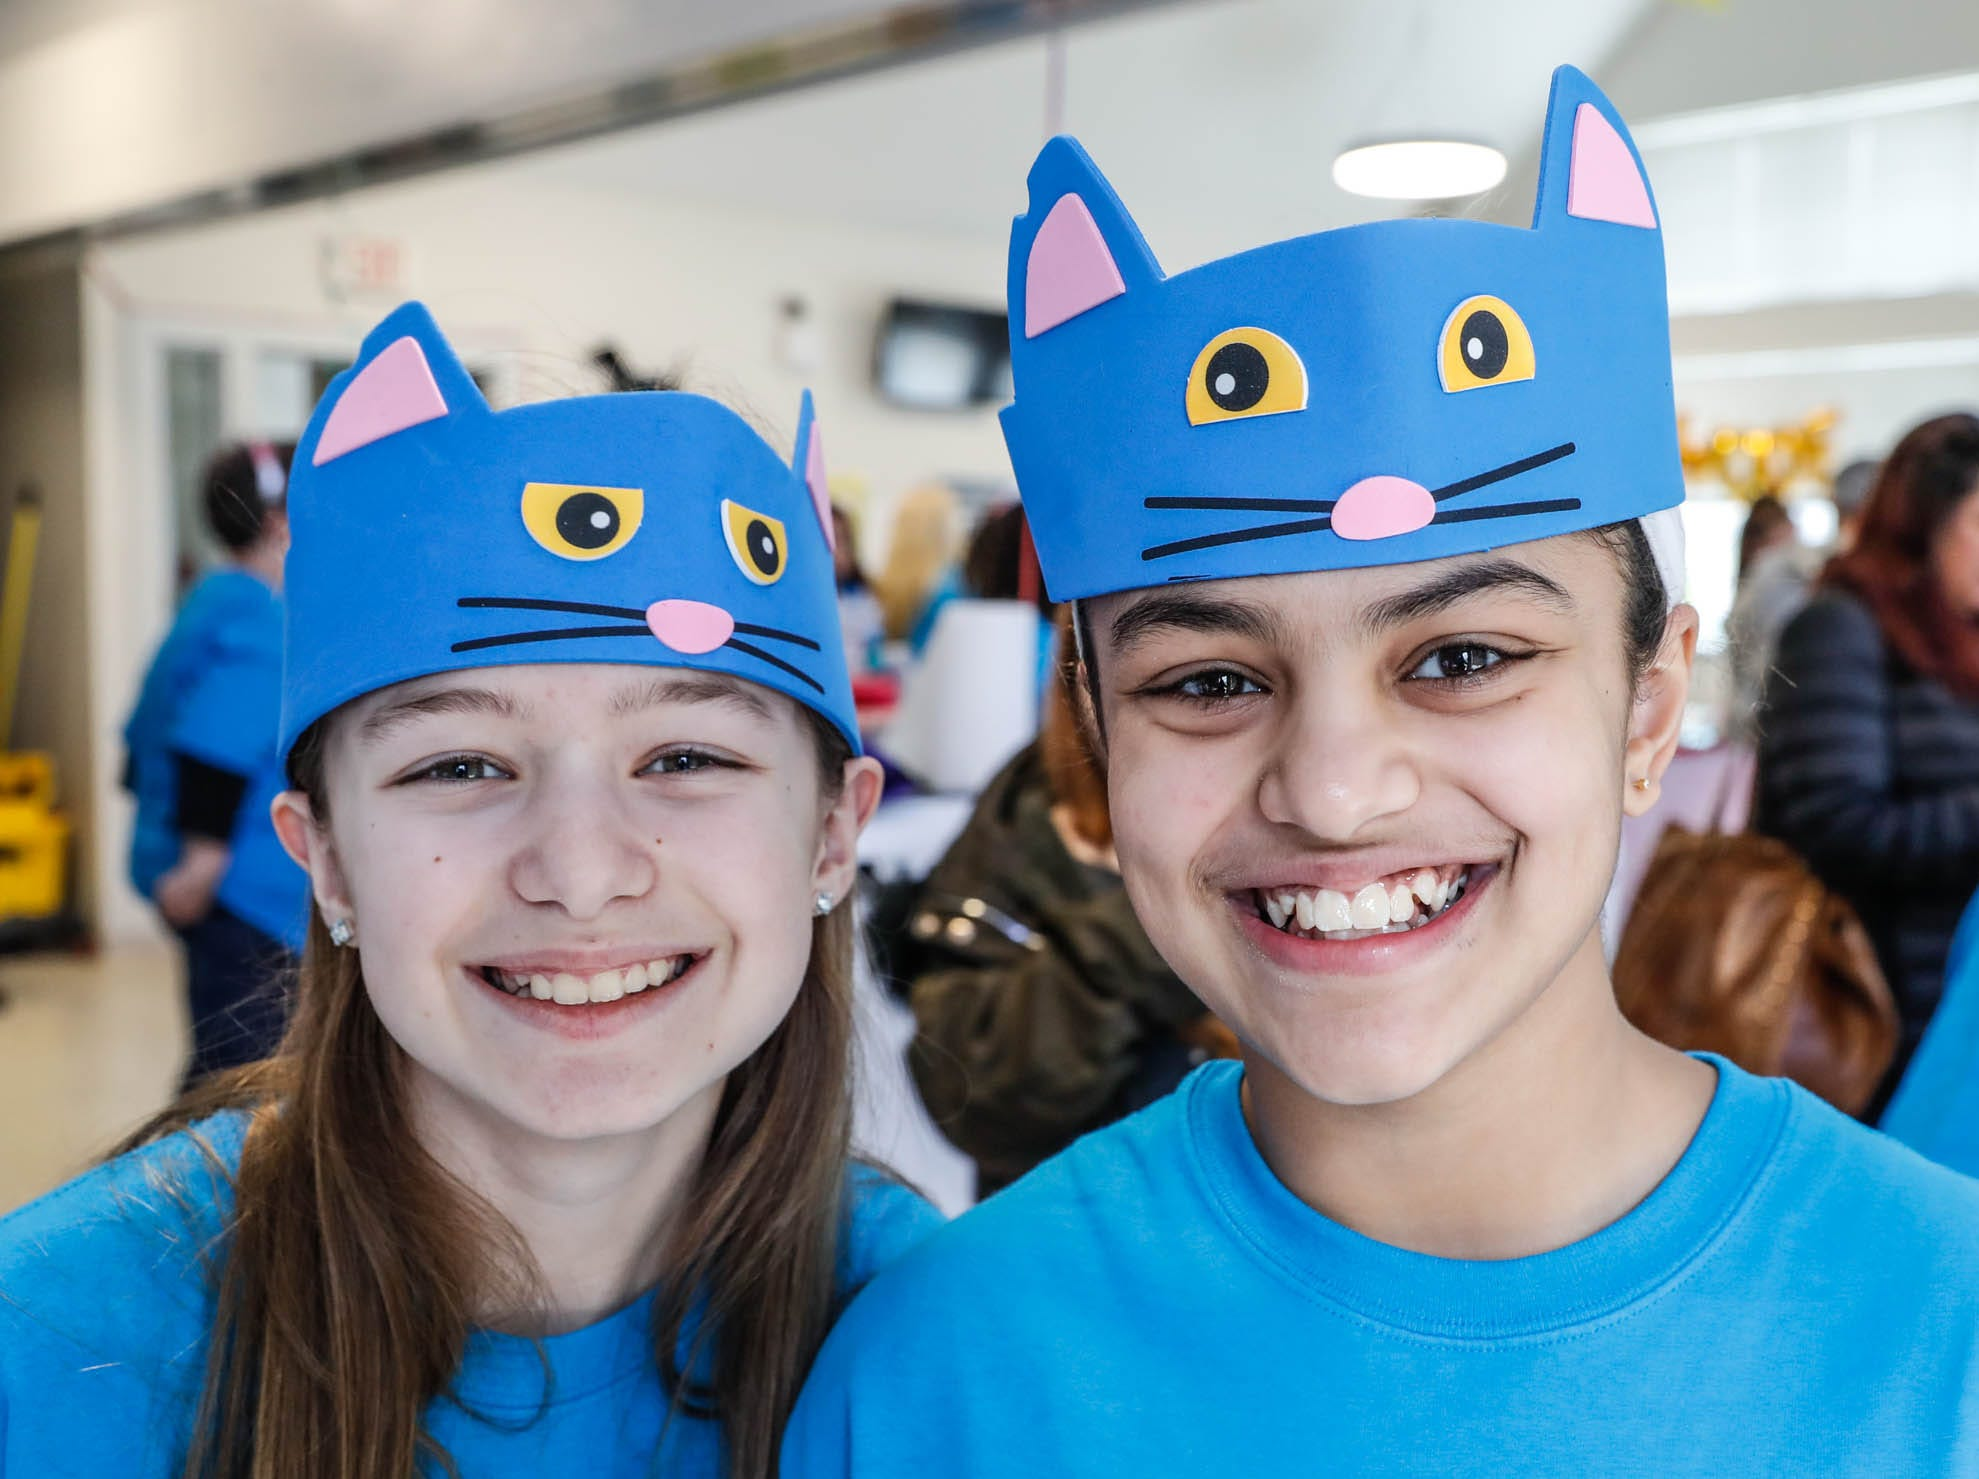 Kayla Thomas, left, and Raeva Kamath volunteer during the Puppy and Kitten Baby Shower on Sunday, March 10, 2019. The event educates families on Indy Humane's foster care program, as Fosters are needed in the spring during puppy and kitten season.